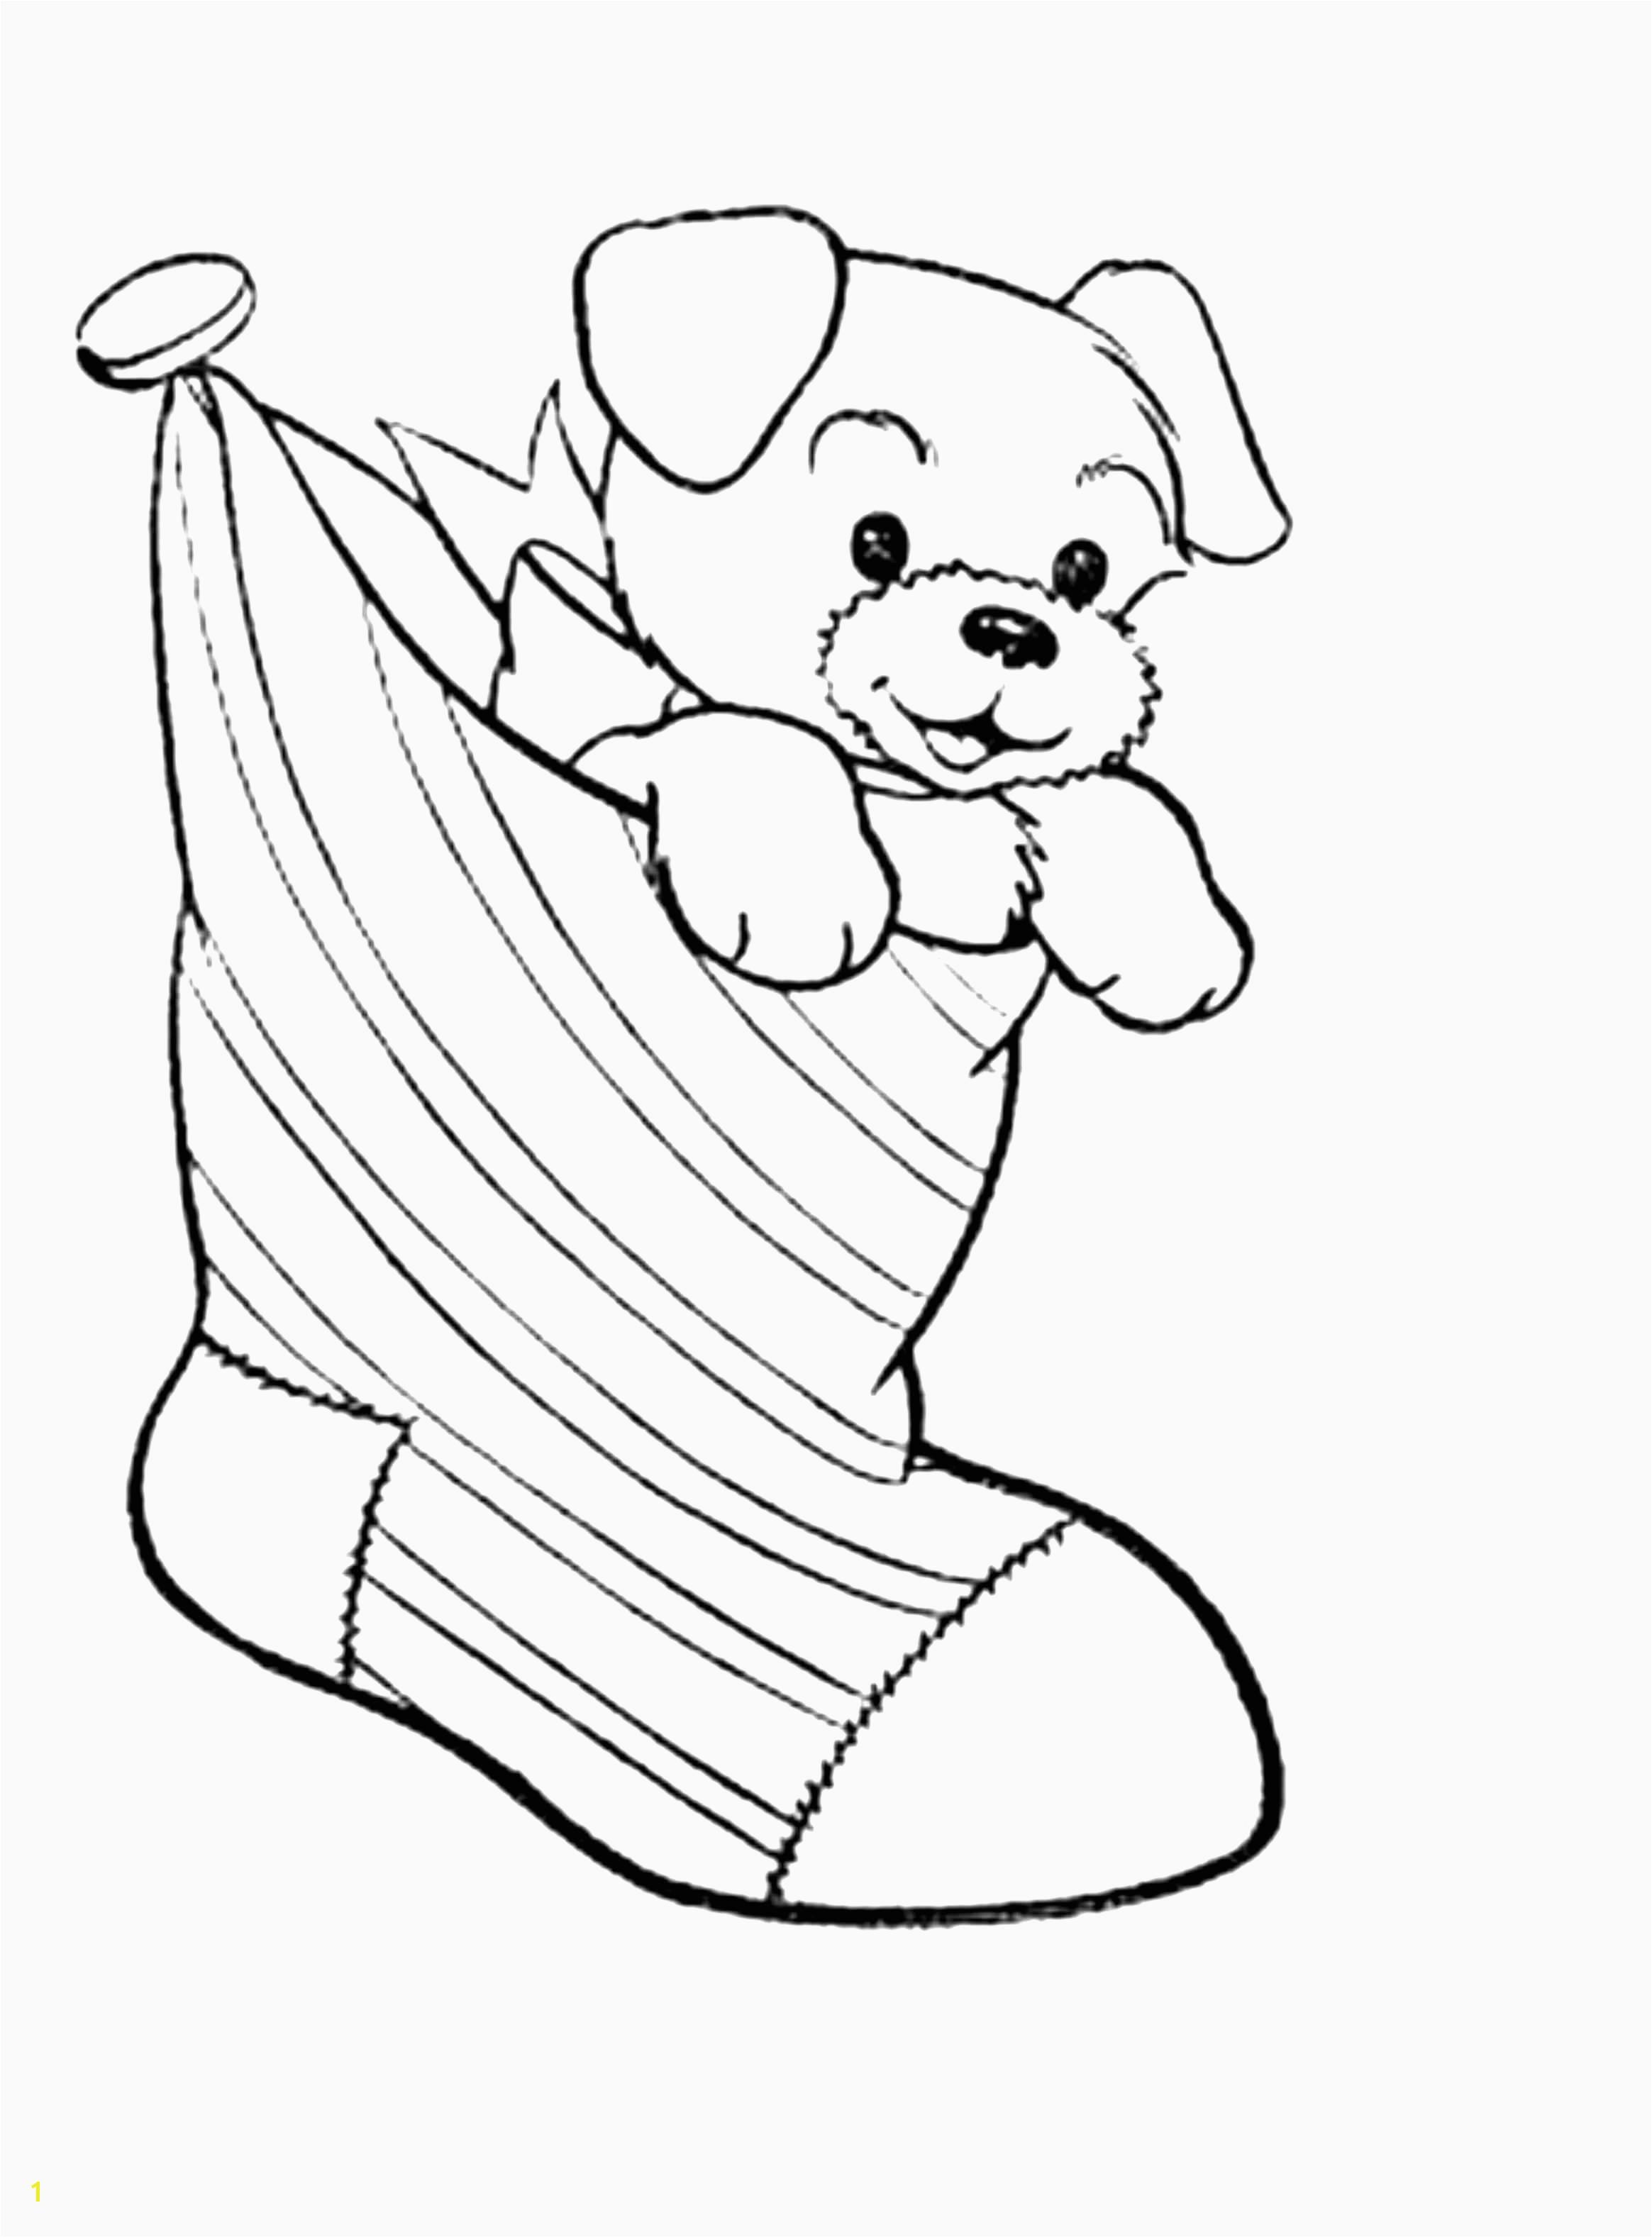 Grocery Shopping Coloring Pages 50 Best Merry Christmas Coloring Pages Pics 1121